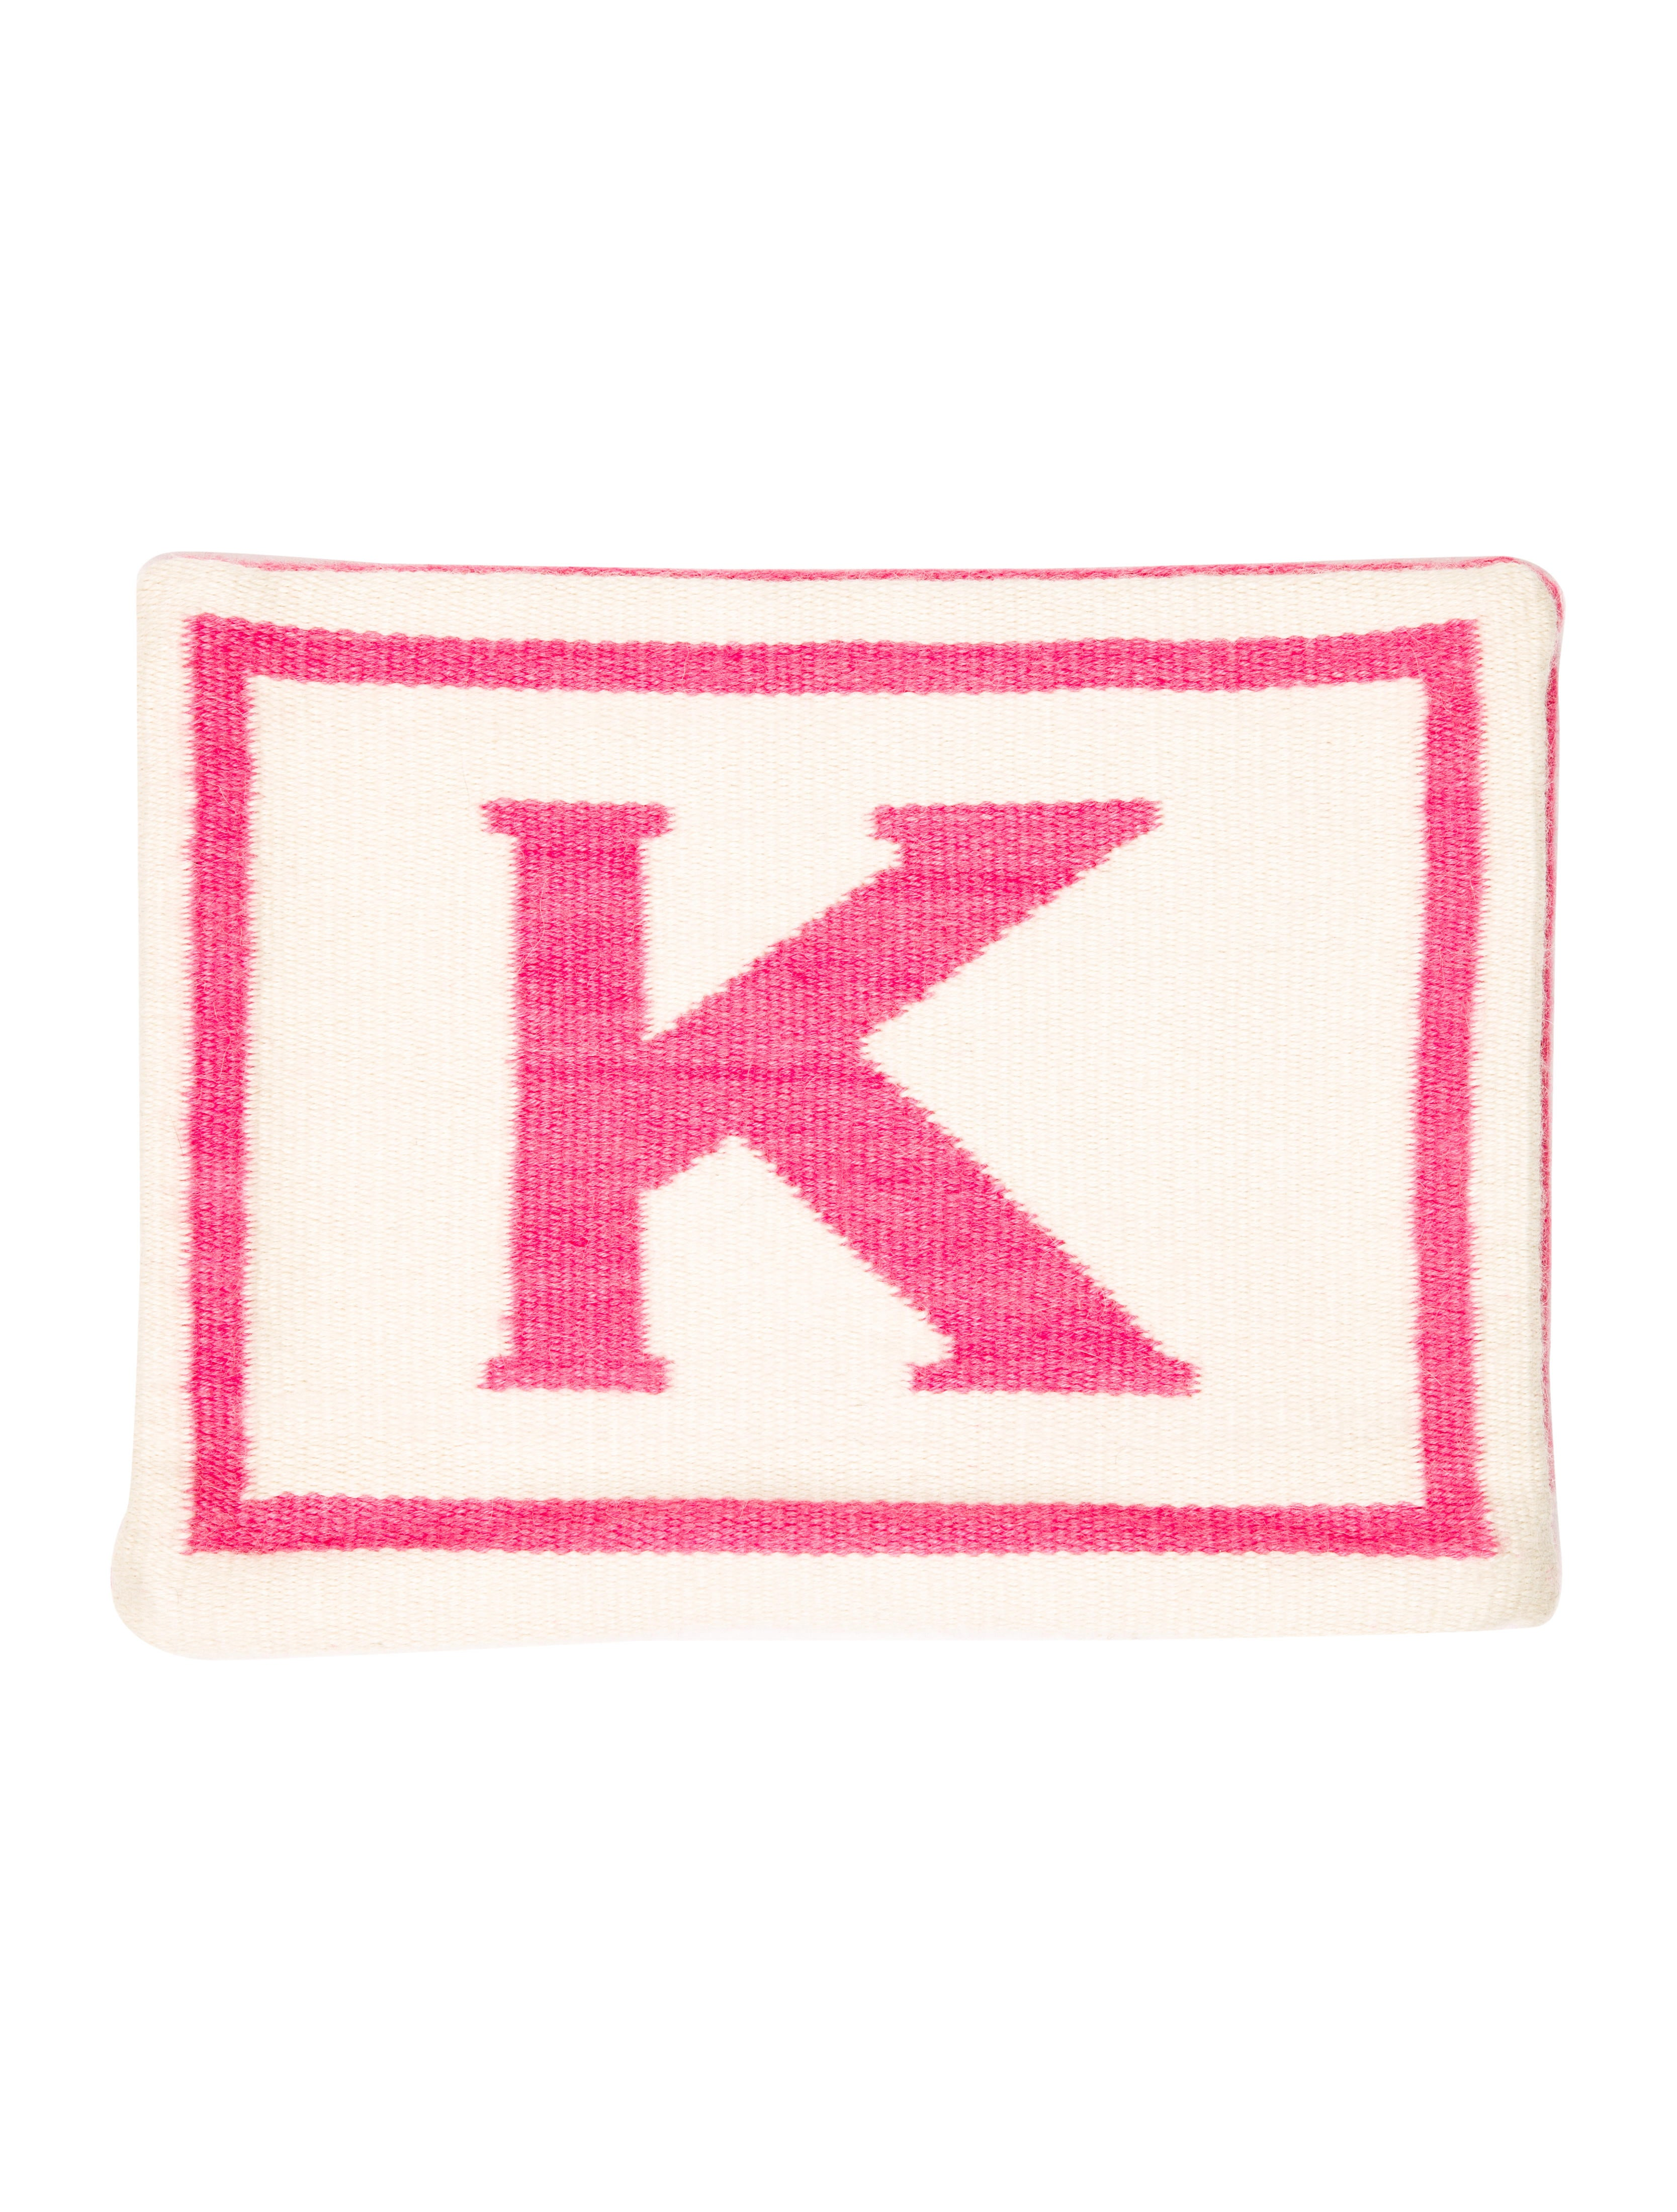 Throw Pillows With Letters : Jonathan Adler Reversible Junior Letter Throw Pillow Case w/ Tags - Bedding And Bath ...